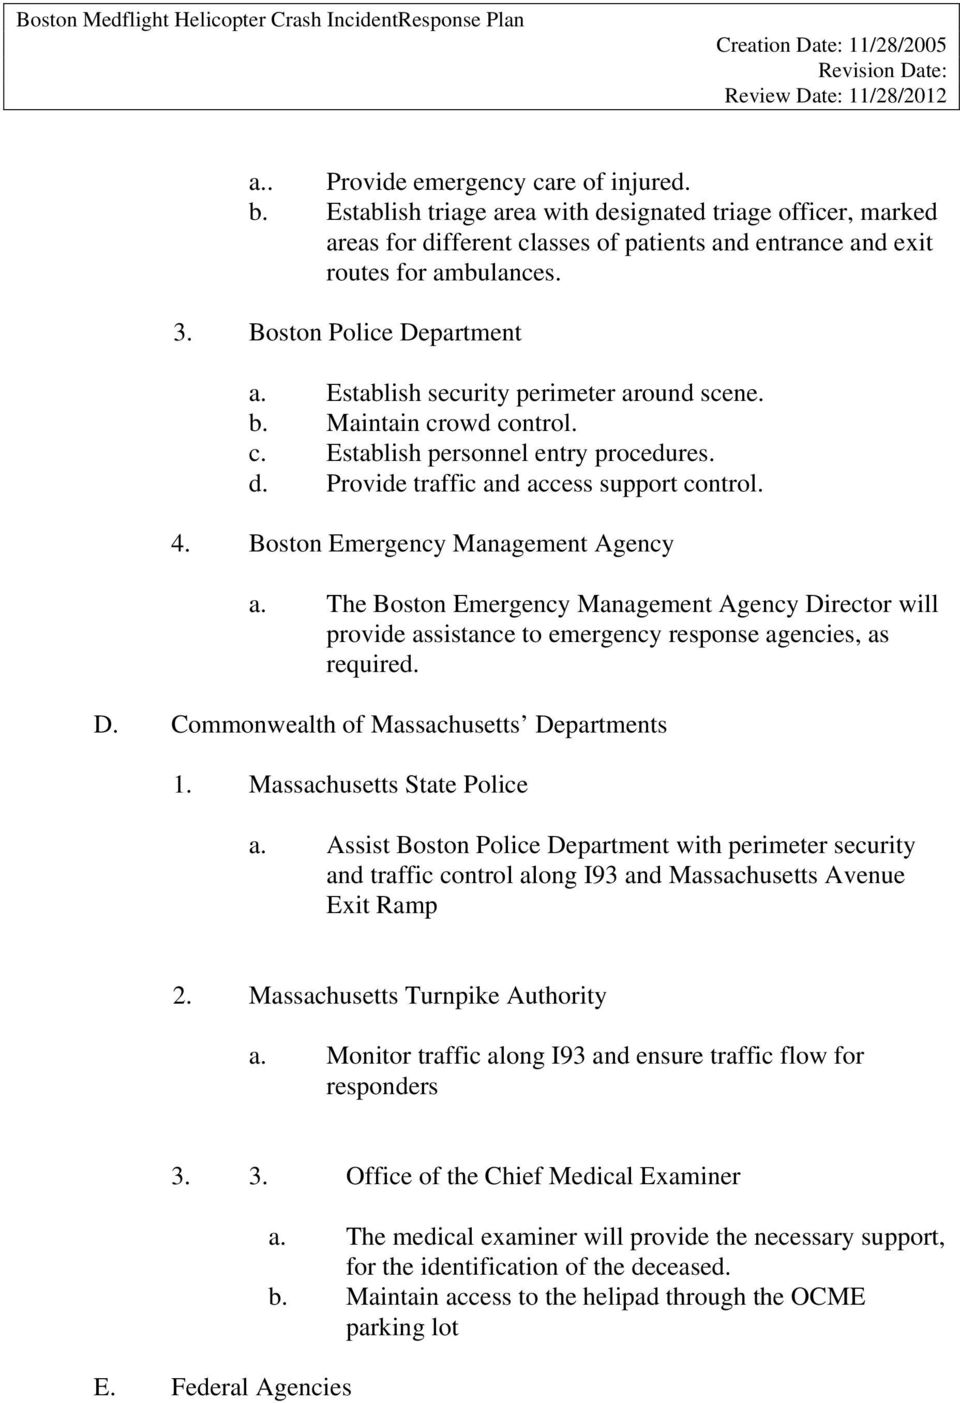 Boston Emergency Management Agency a. The Boston Emergency Management Agency Director will provide assistance to emergency response agencies, as required. D. Commonwealth of Massachusetts Departments 1.